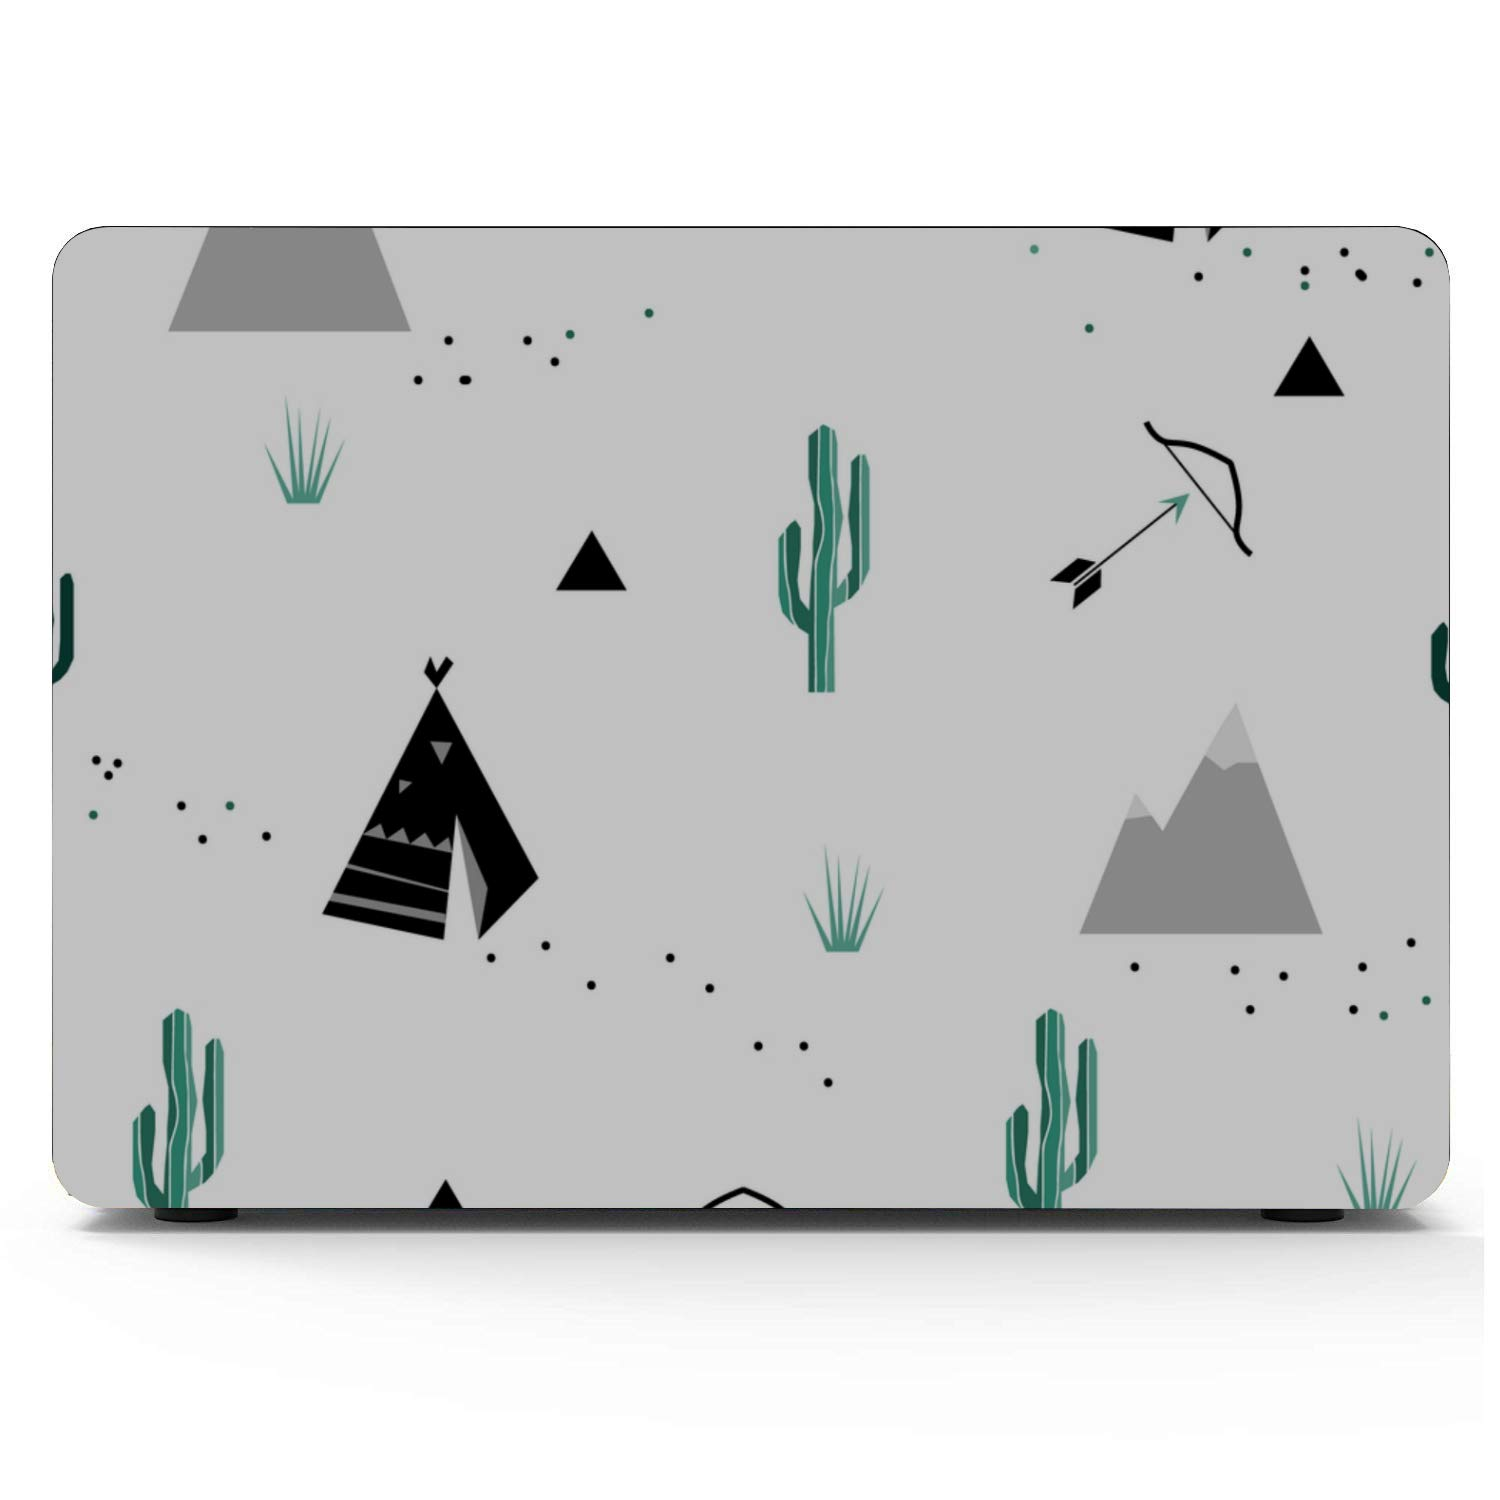 Laptop Cover Wilderness Nature View Sun Cactus Tree Plastic Hard Shell Compatible Mac Air 11 Pro 13 15 MacBook Pro 2015 Case Protection for MacBook 2016-2019 Version